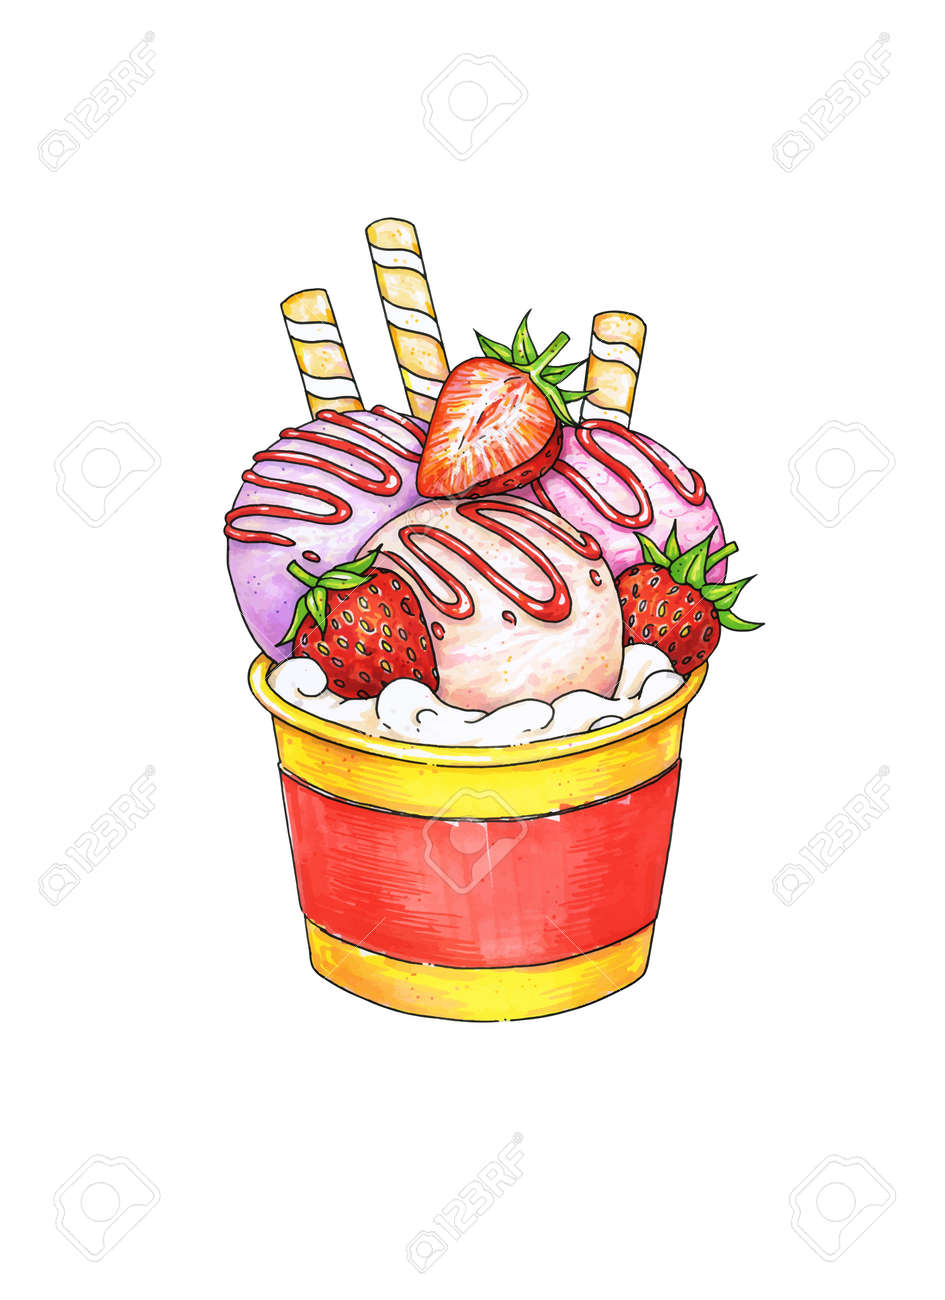 Sundae Ice Cream With Taste Of Strawberry In Cup On White Background Handwork Sketch